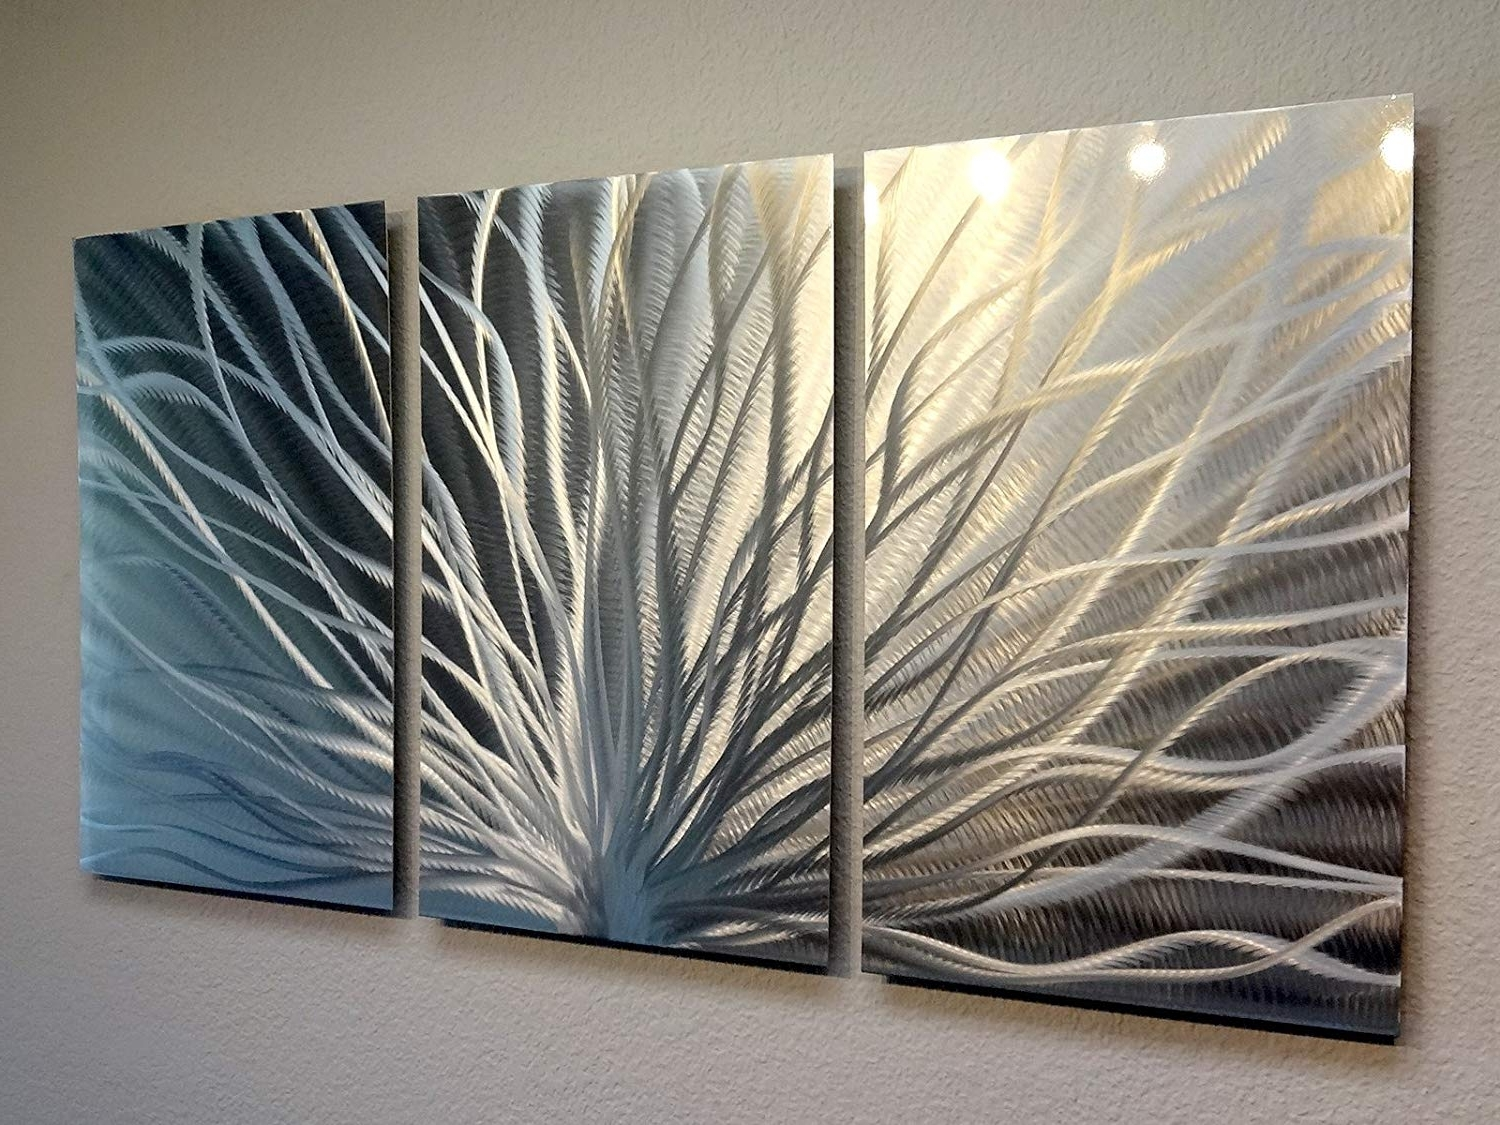 Wall Art Inside Current Amazon: Miles Shay Metal Wall Art, Modern Home Decor, Abstract (View 5 of 15)